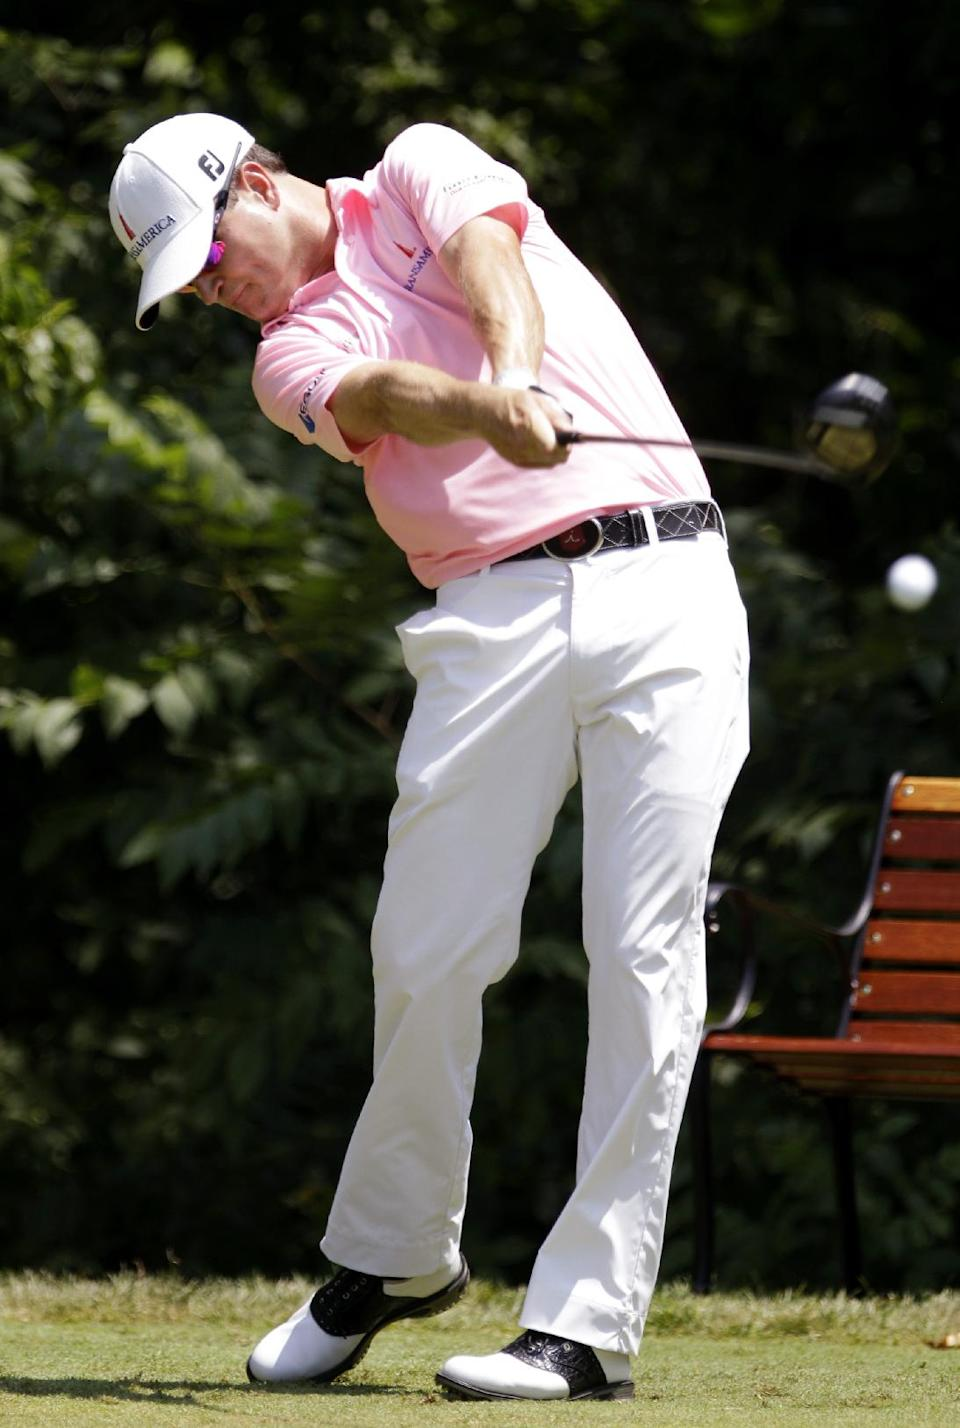 Zach Johnson hits off the second tee during the final round of the John Deere Classic golf tournament at TPC Deere Run, Sunday, July 15, 2012, in Silvis, Ill. (AP Photo/Charlie Neibergall)